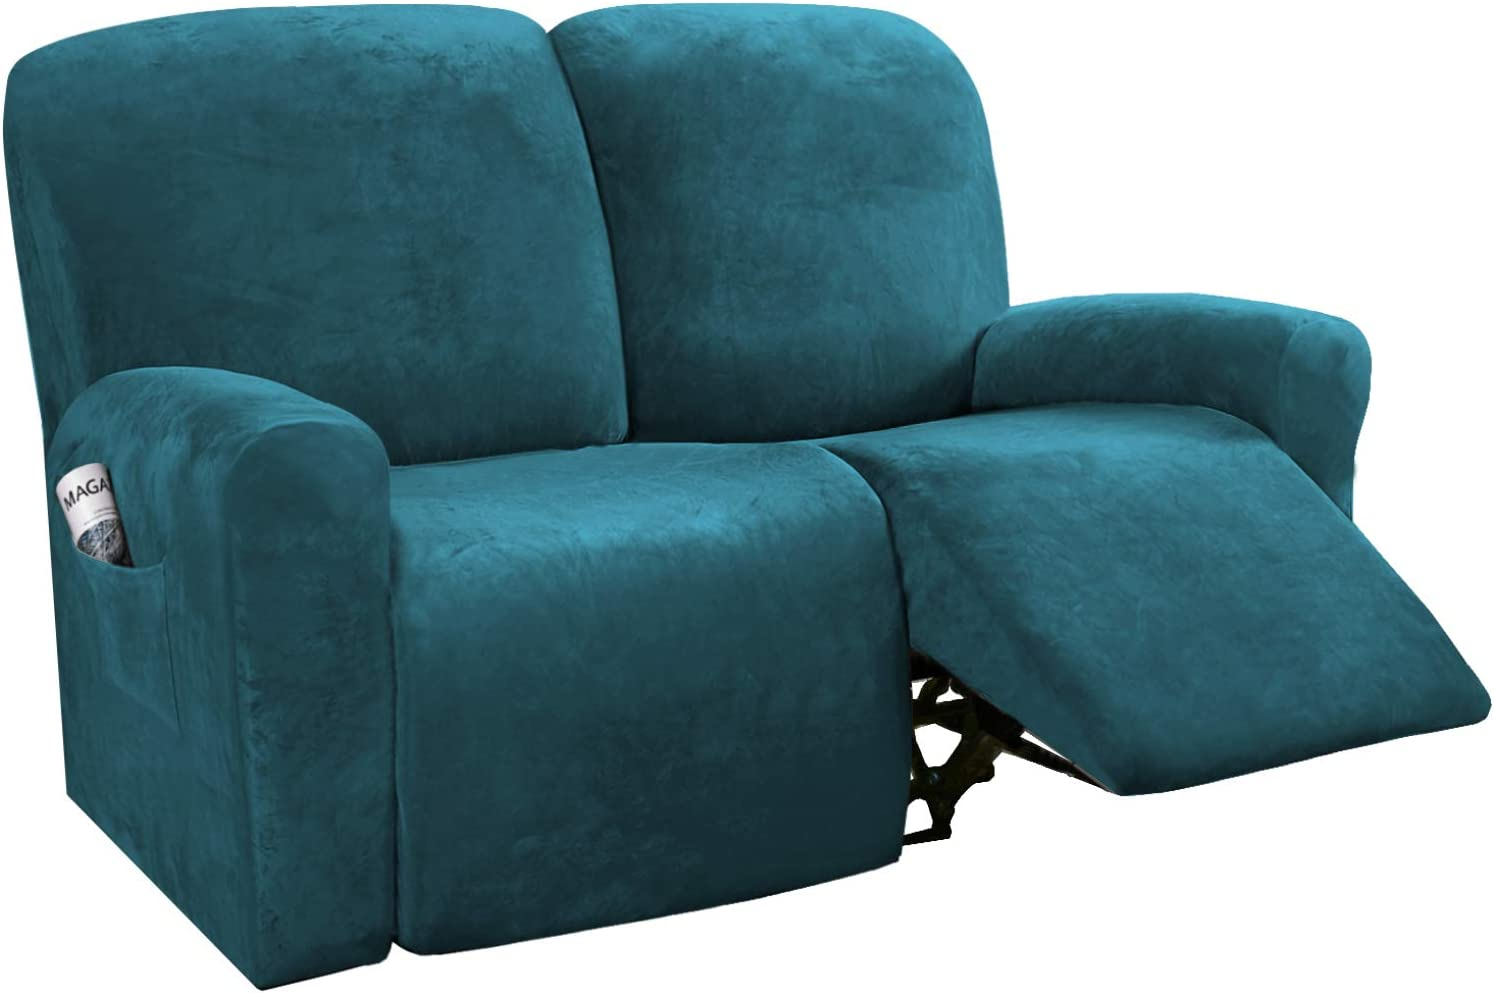 H.VERSAILTEX 6-Pieces Recliner Loveseat Covers Velvet Stretch Reclining Couch Covers for 2 Cushion Sofa Slipcovers Furniture Covers Form Fit Customized Style Thick Soft Washable(Medium, Deep Teal)